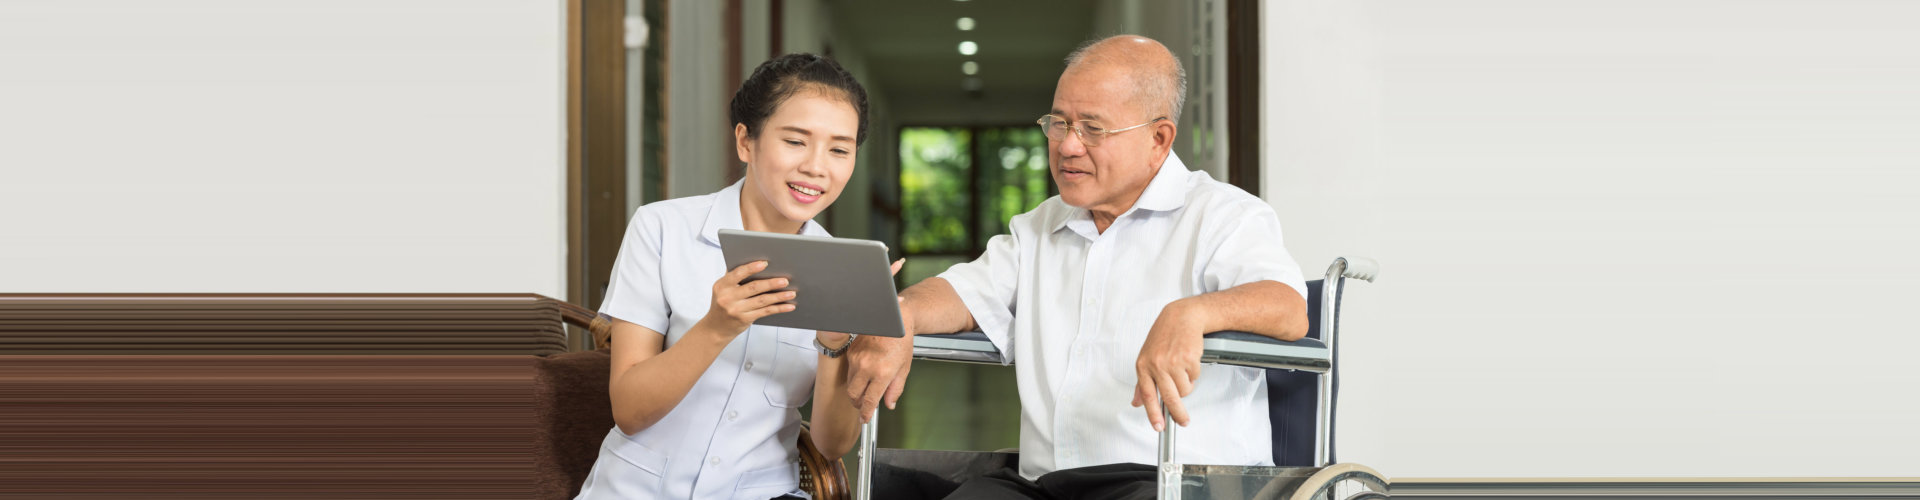 caregiver showing a photo from the tablet to an elder man concept